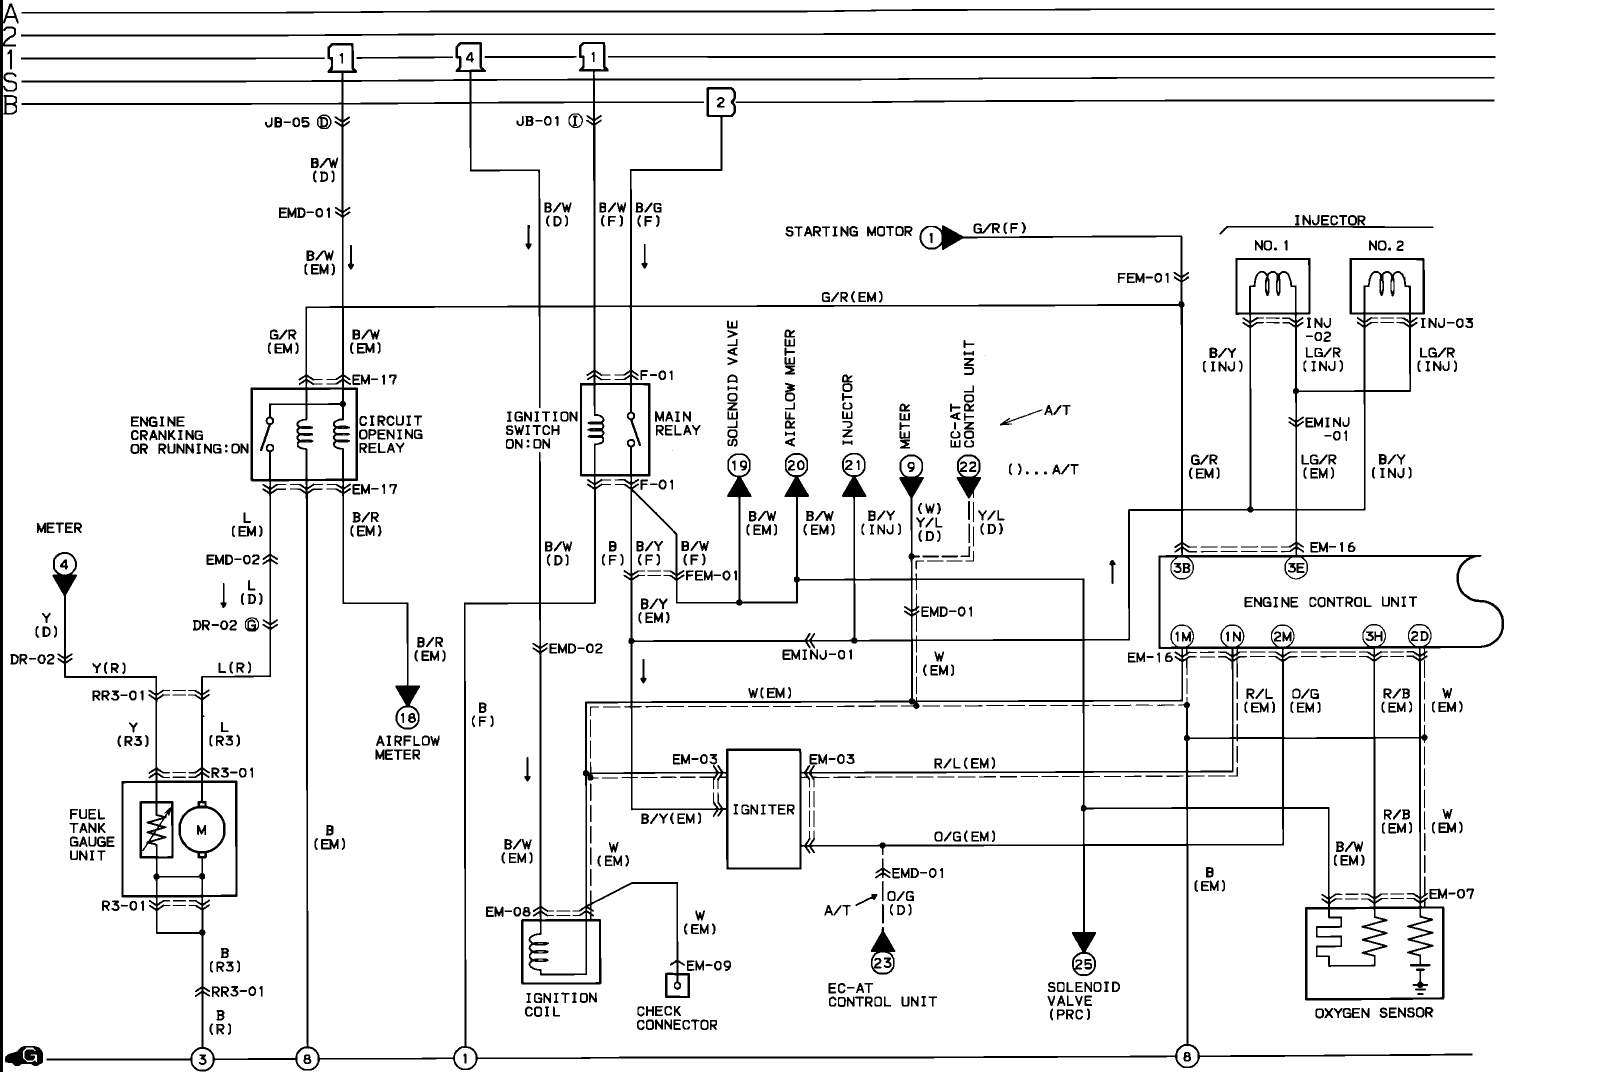 2003 mazda mpv wiring diagram wiring diagram pictures u2022 rh mapavick co  uk Briggs Coil Wiring Diagram Ford Coil Wiring Diagram